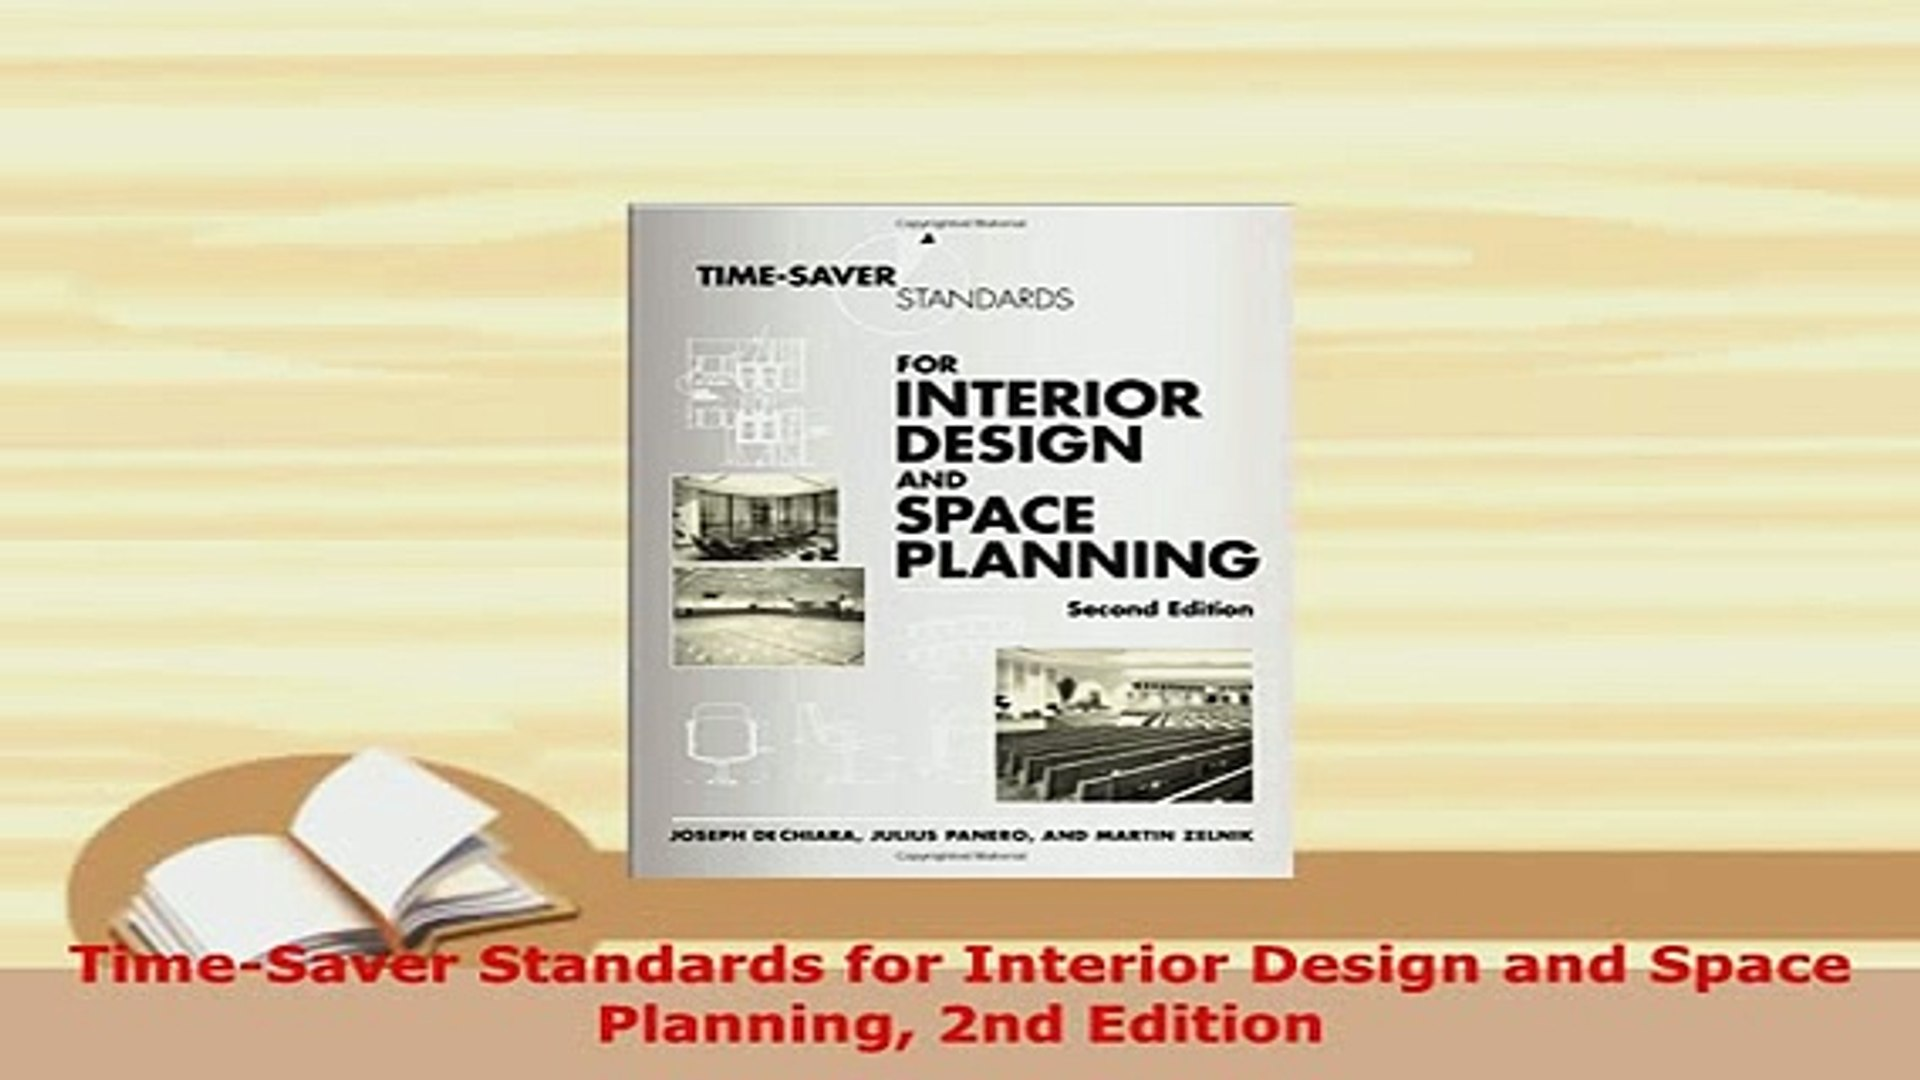 Download Timesaver Standards For Interior Design And Space Planning 2nd Edition Download Full Ebook Video Dailymotion